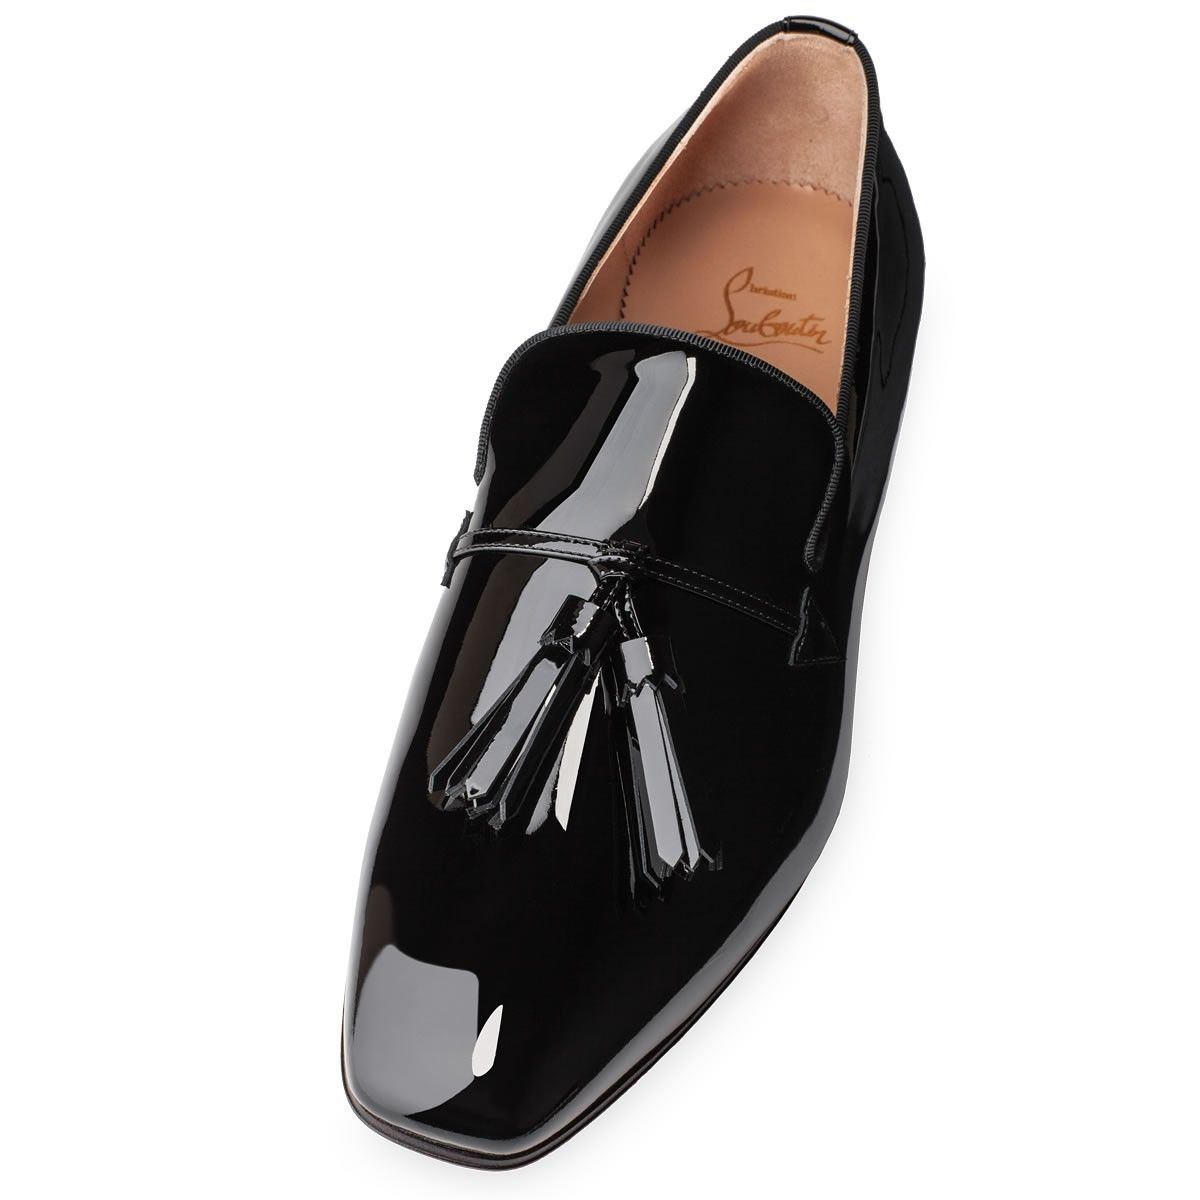 flat patent black patent shoes i d wear